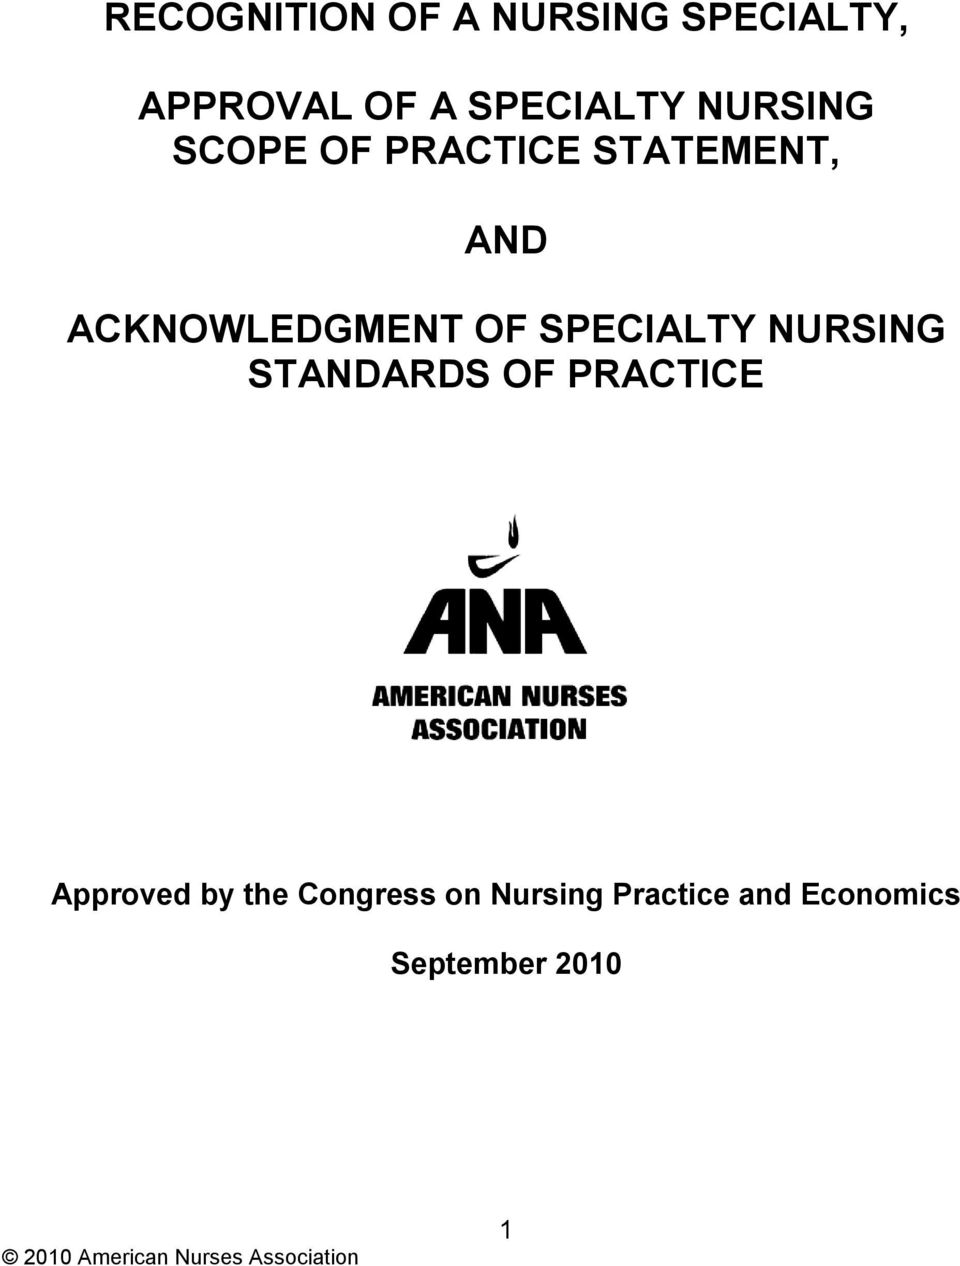 ACKNOWLEDGMENT OF SPECIALTY NURSING STANDARDS OF PRACTICE